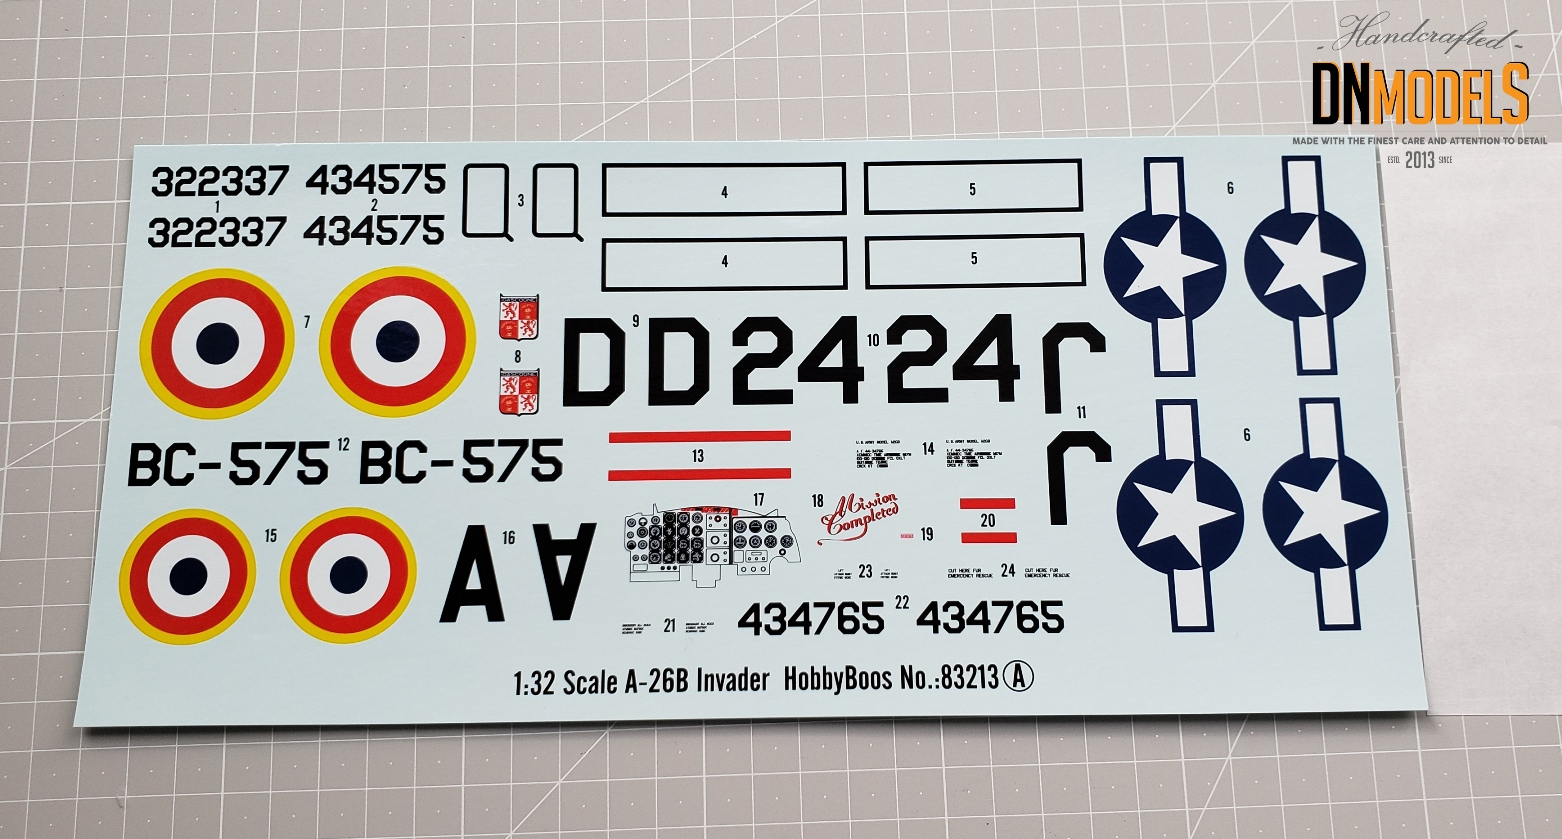 decals A26B Invader Hobby Boss 83213 review dn models masks for scale models